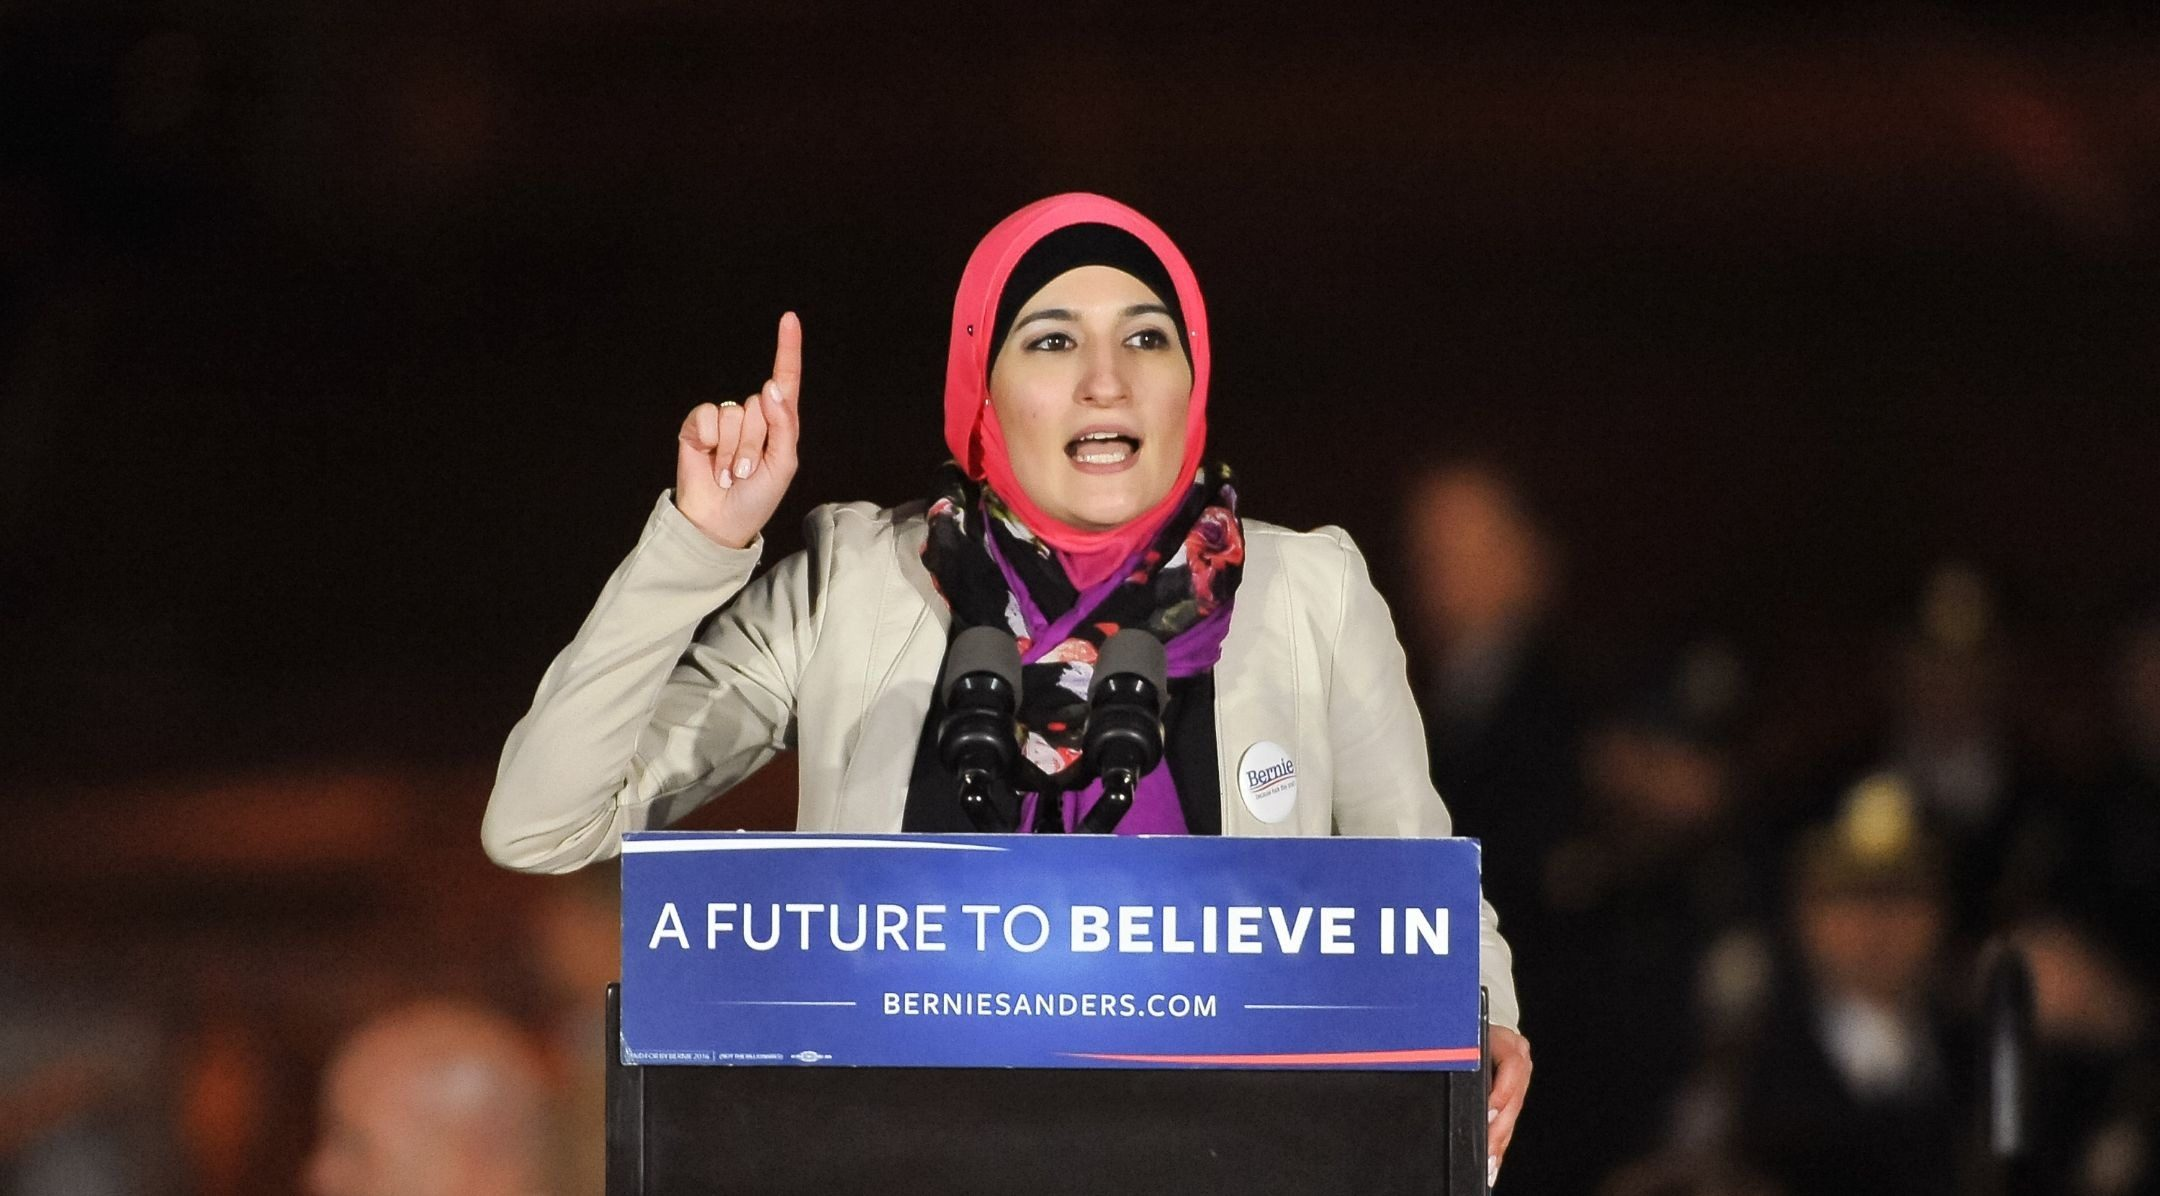 Linda Sarsour speaks at a campaign event for Democratic presidential candidate Bernie Sanders at Washington Square Park in New York City, April 13, 2016. (Photo/JTA-D Dipasupil-WireImage-Getty Images)